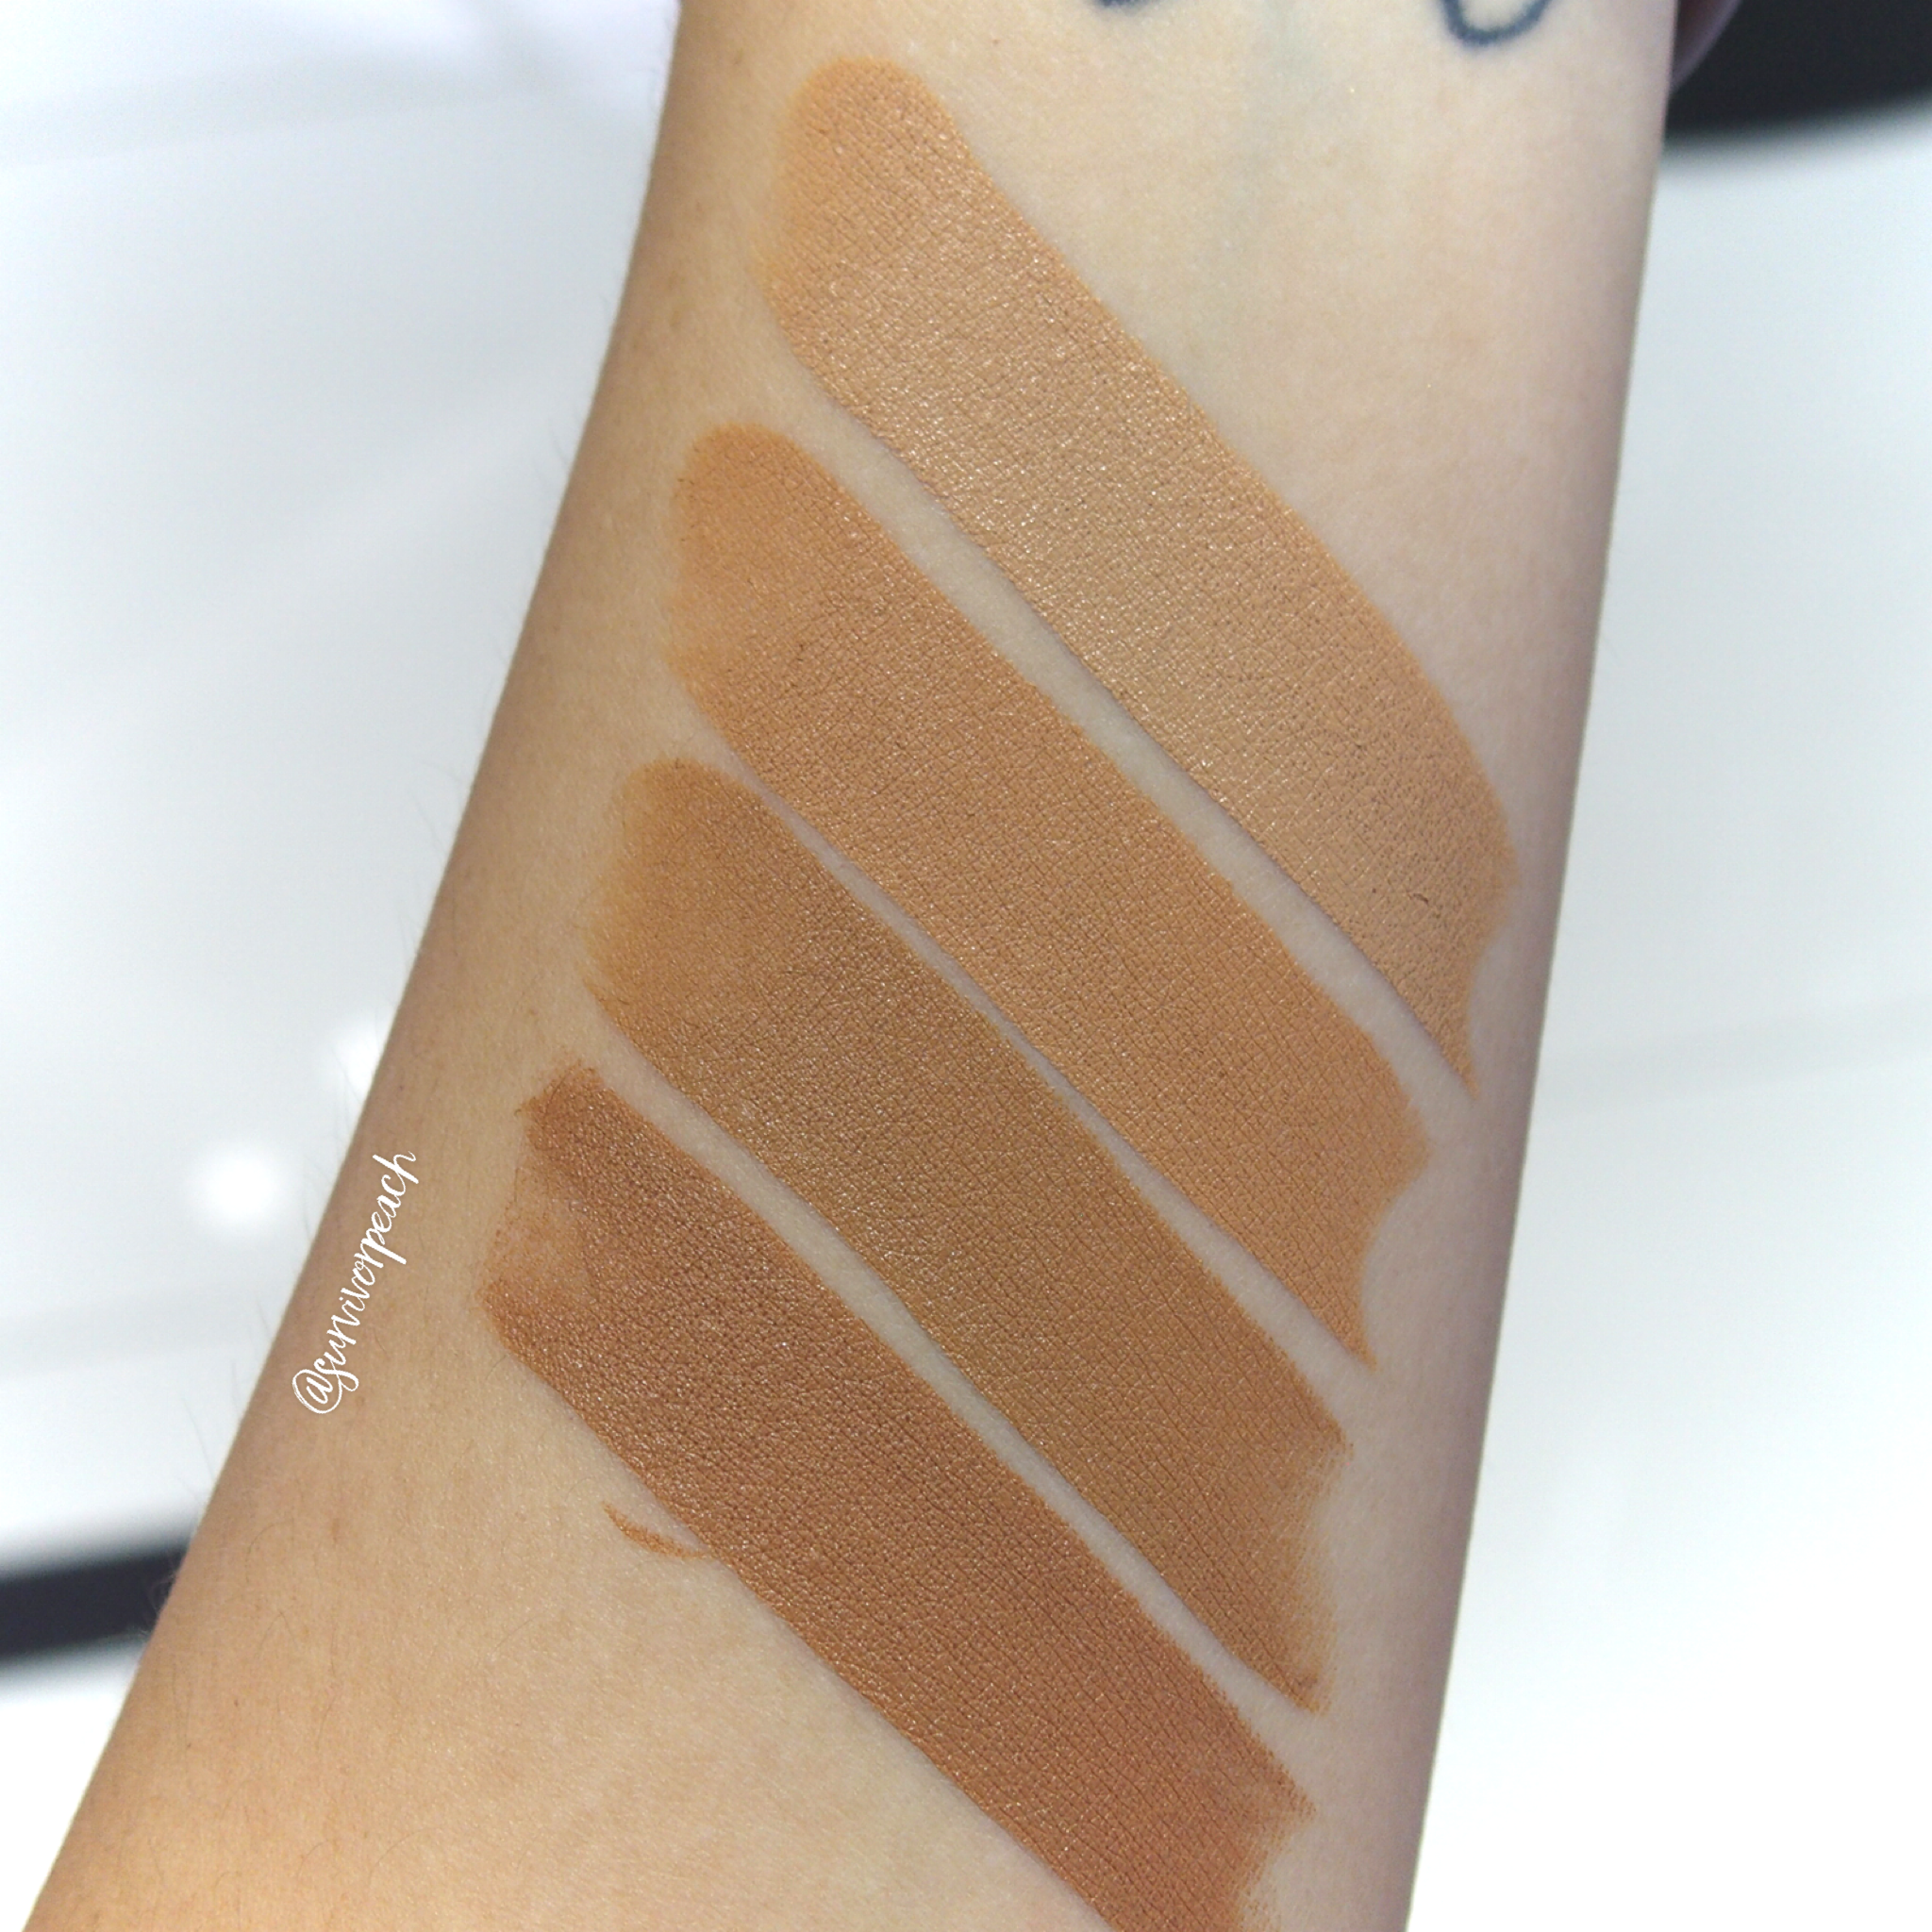 Marc Jacobs Accomplice Concealer & Touch Up Stick swatches - Tan